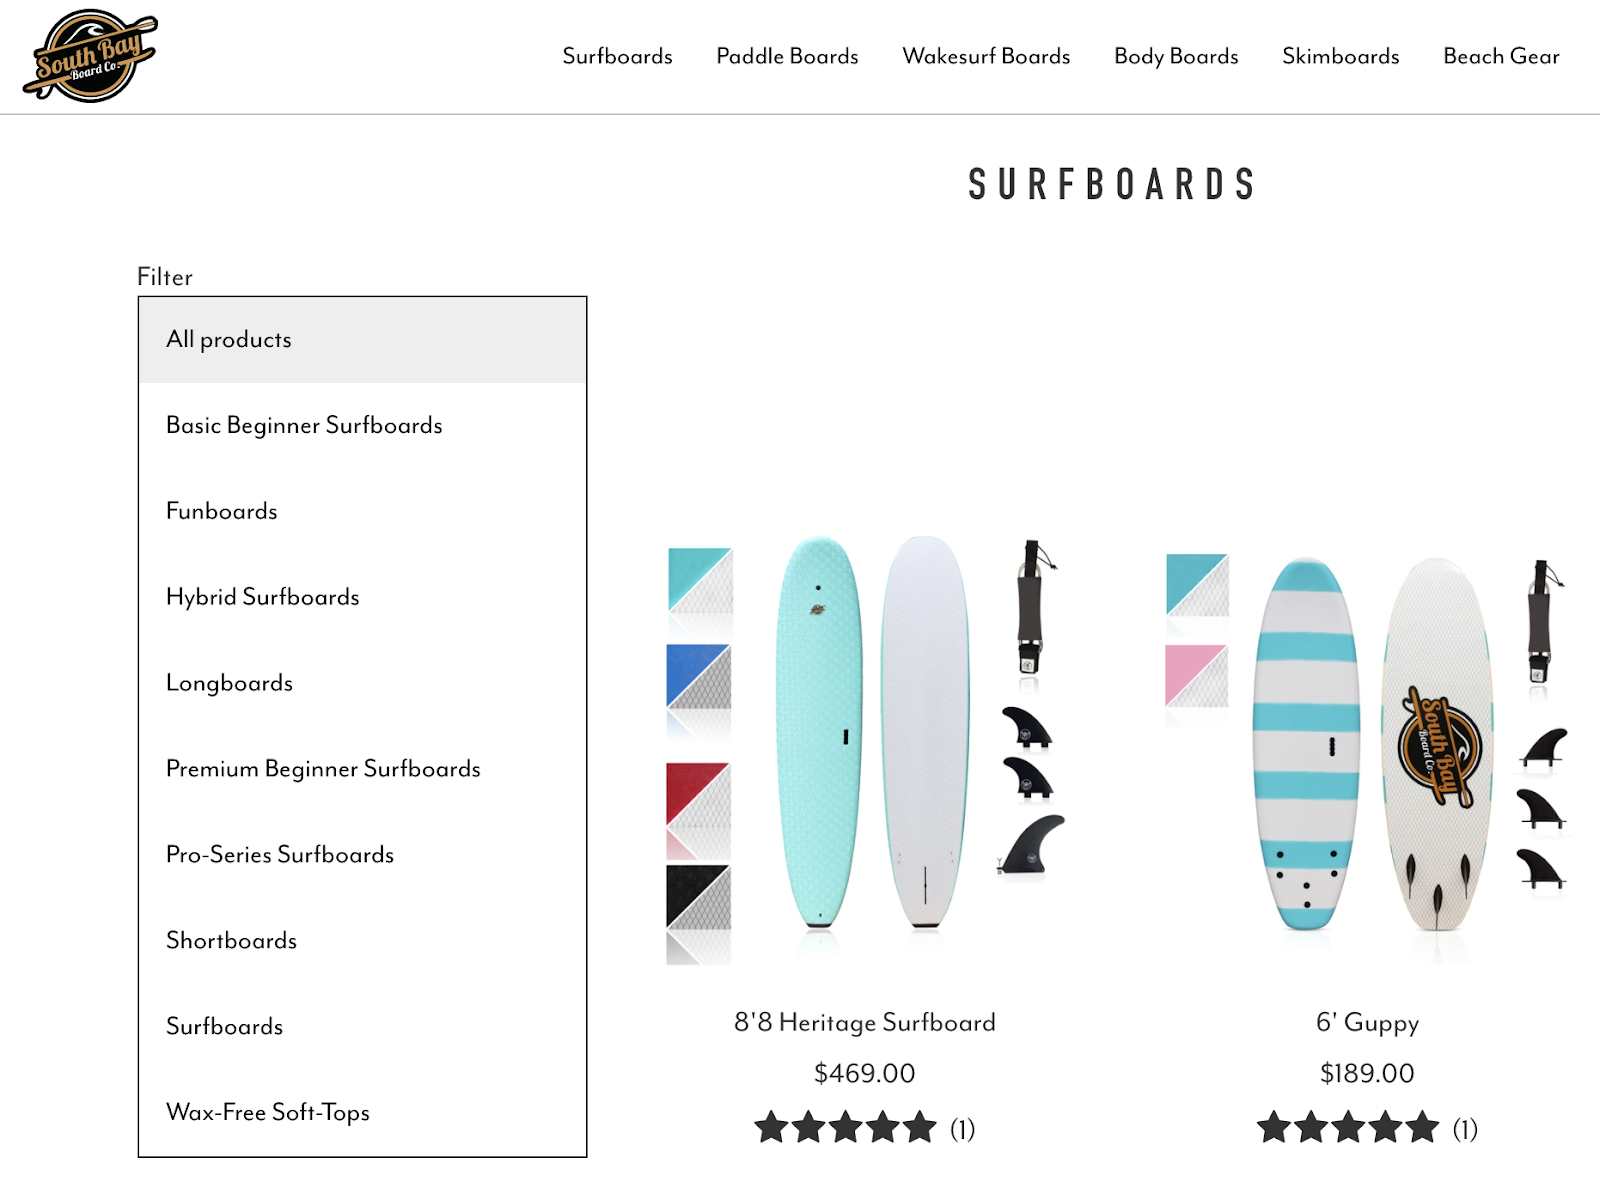 South Bay Board Co Website